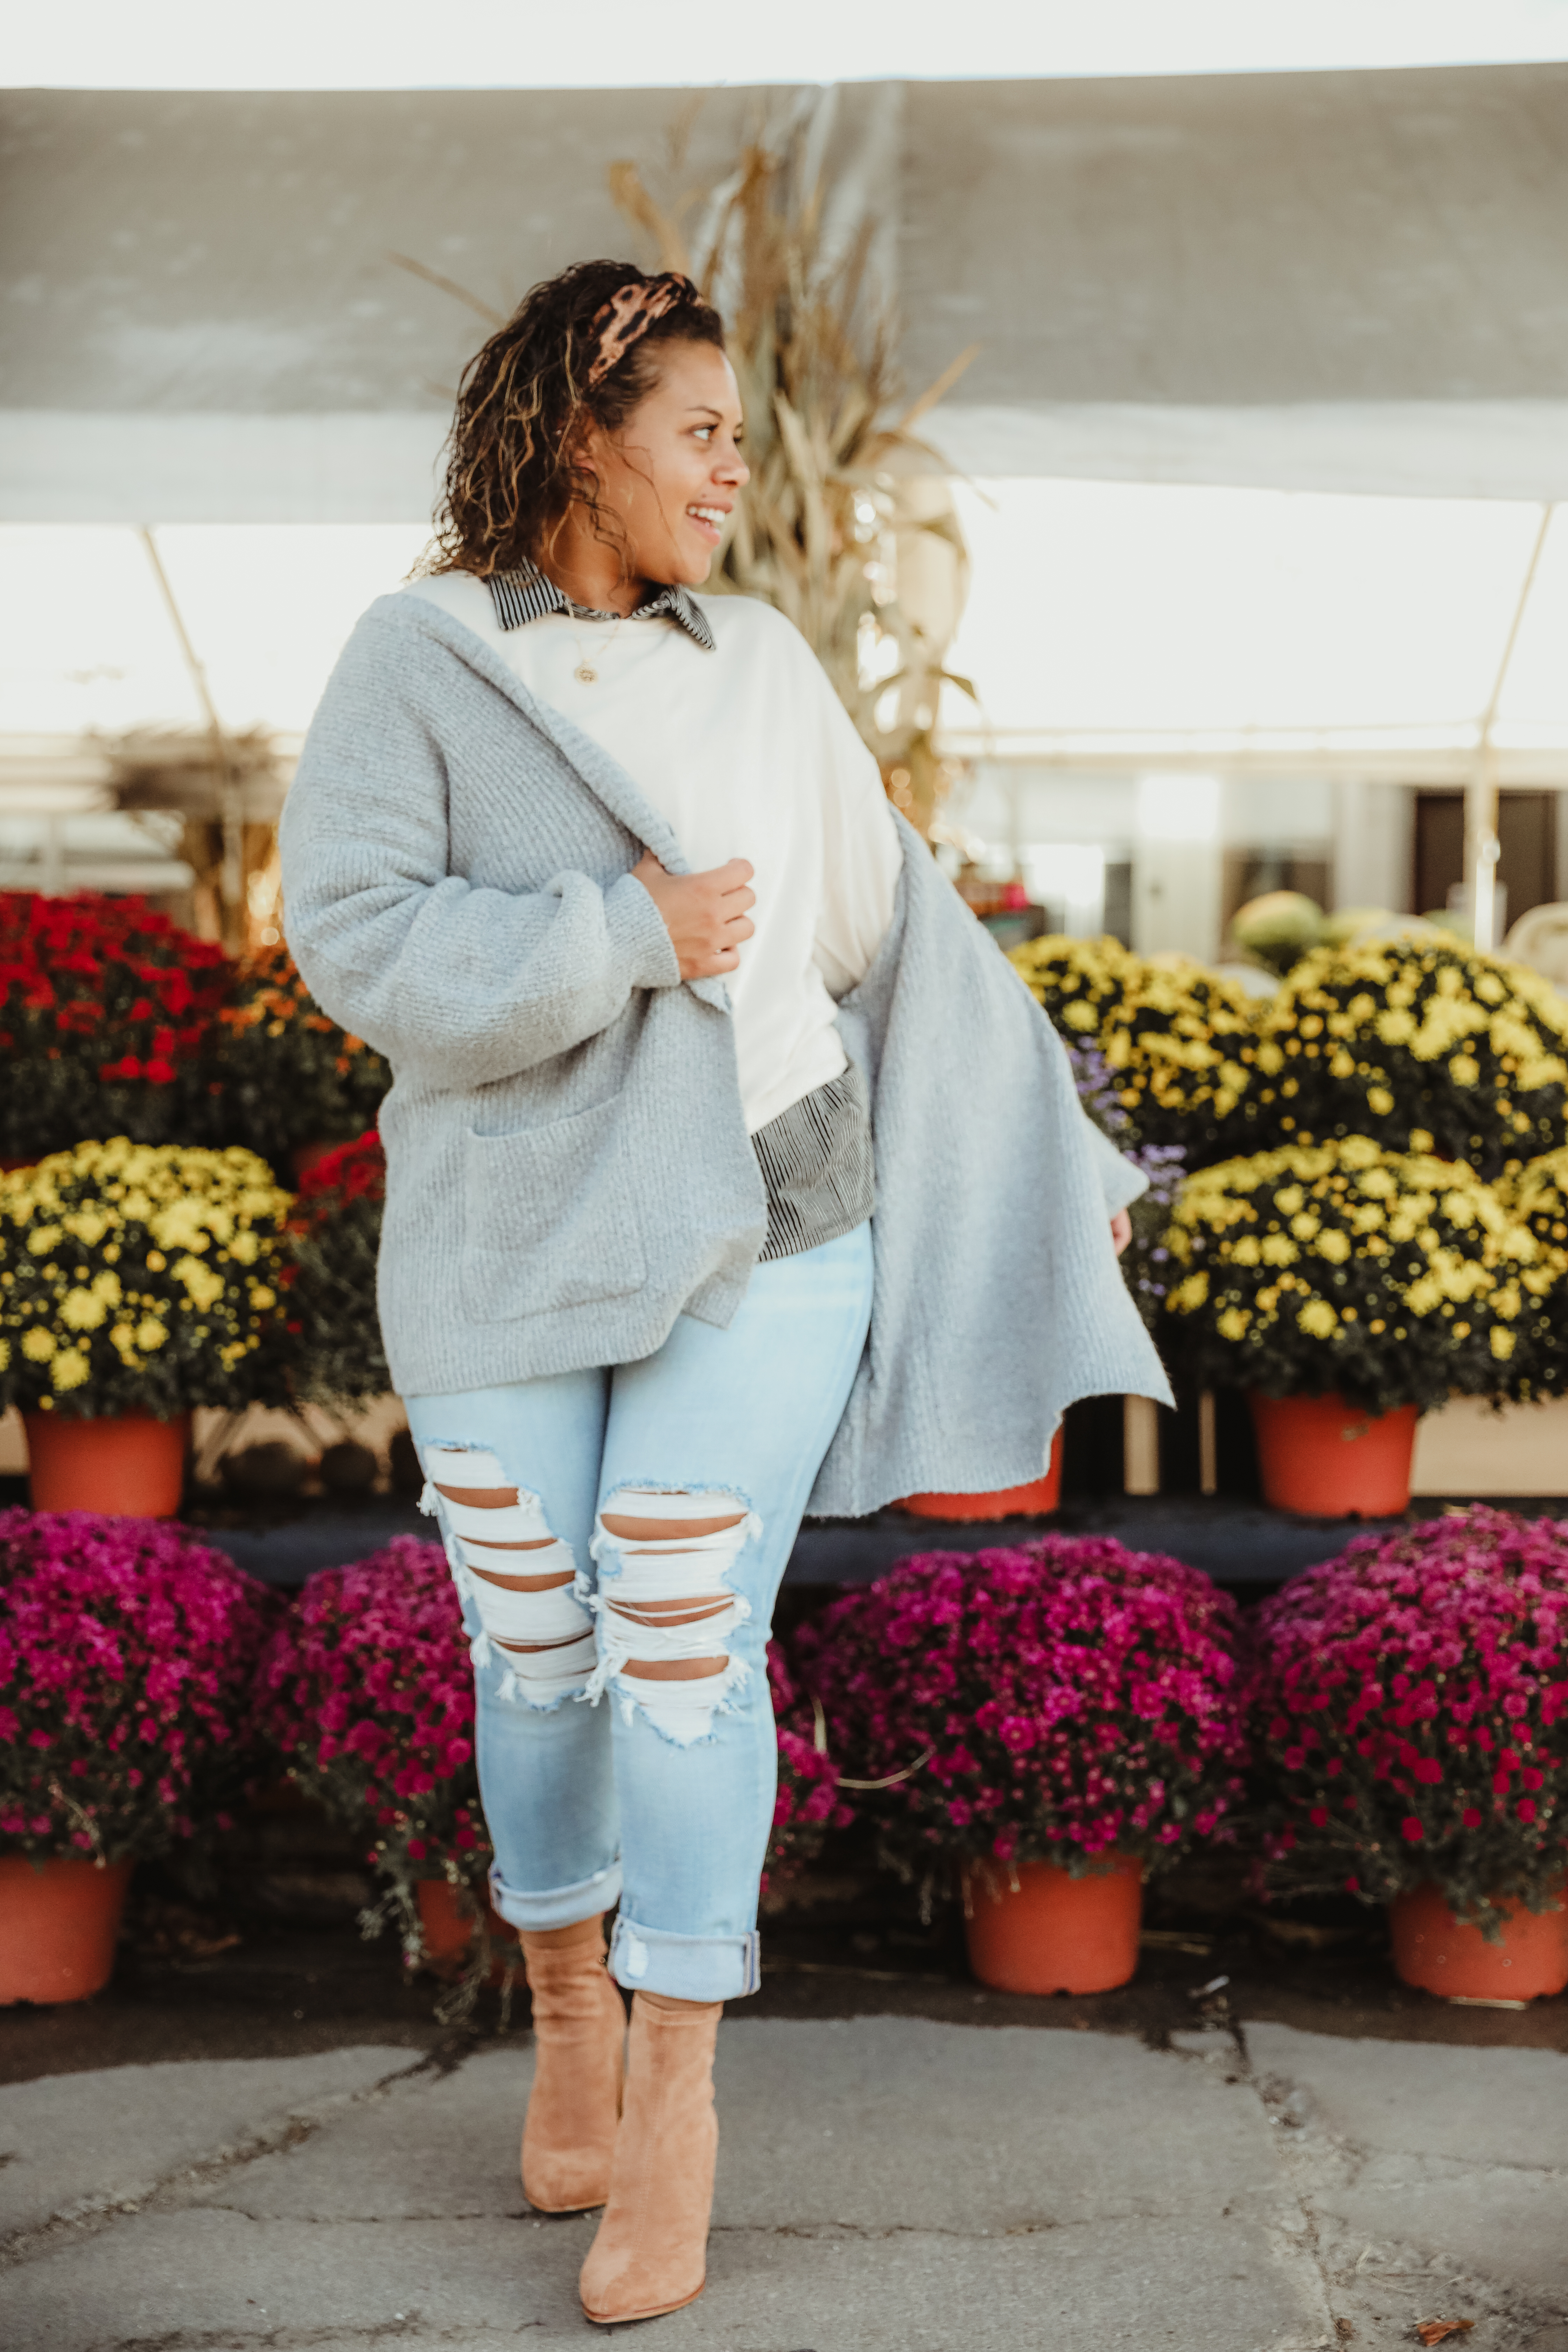 love to layer? us too! play with adding extra layers on top and keeping it sleek and simple on bottom for major fall feels.